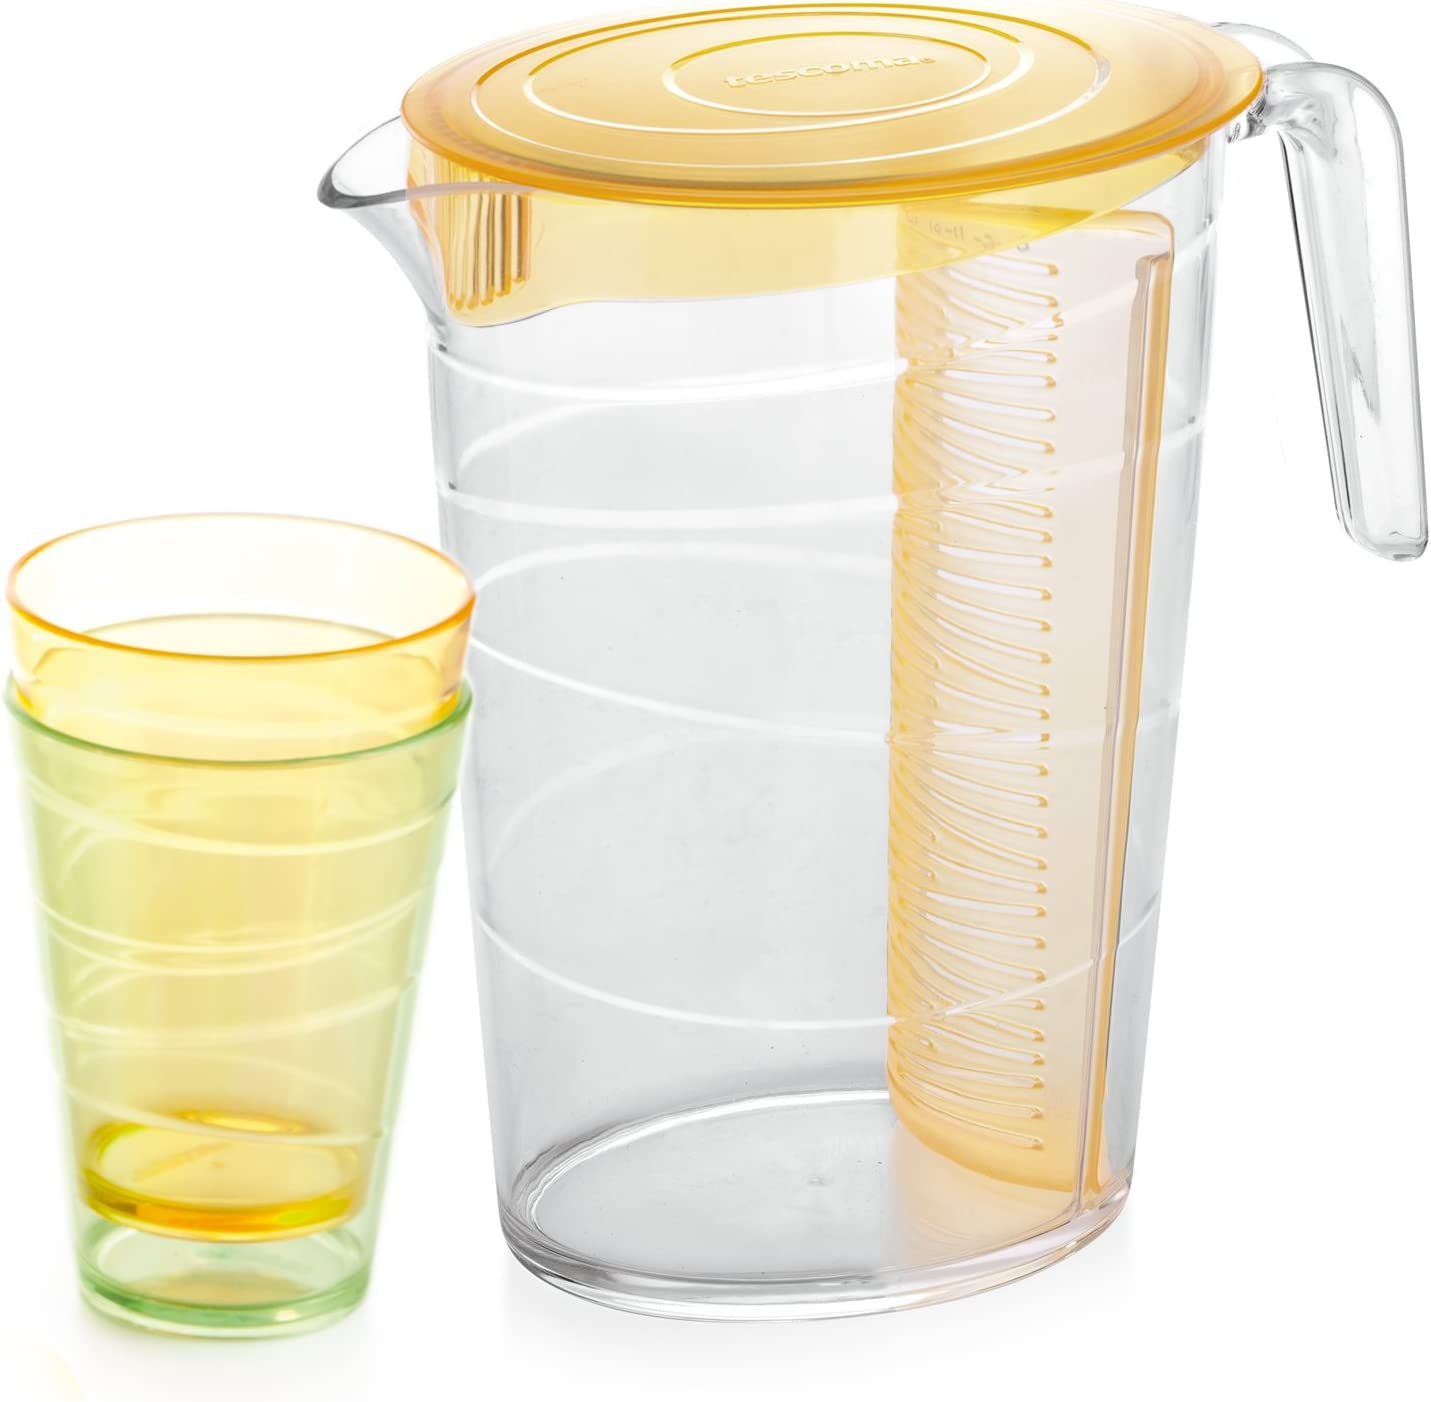 Tescoma Pitcher 2 5 L 4 Cups 2.5 Mydrink Lid Selling rankings Litr NEW before selling ☆ Orange with